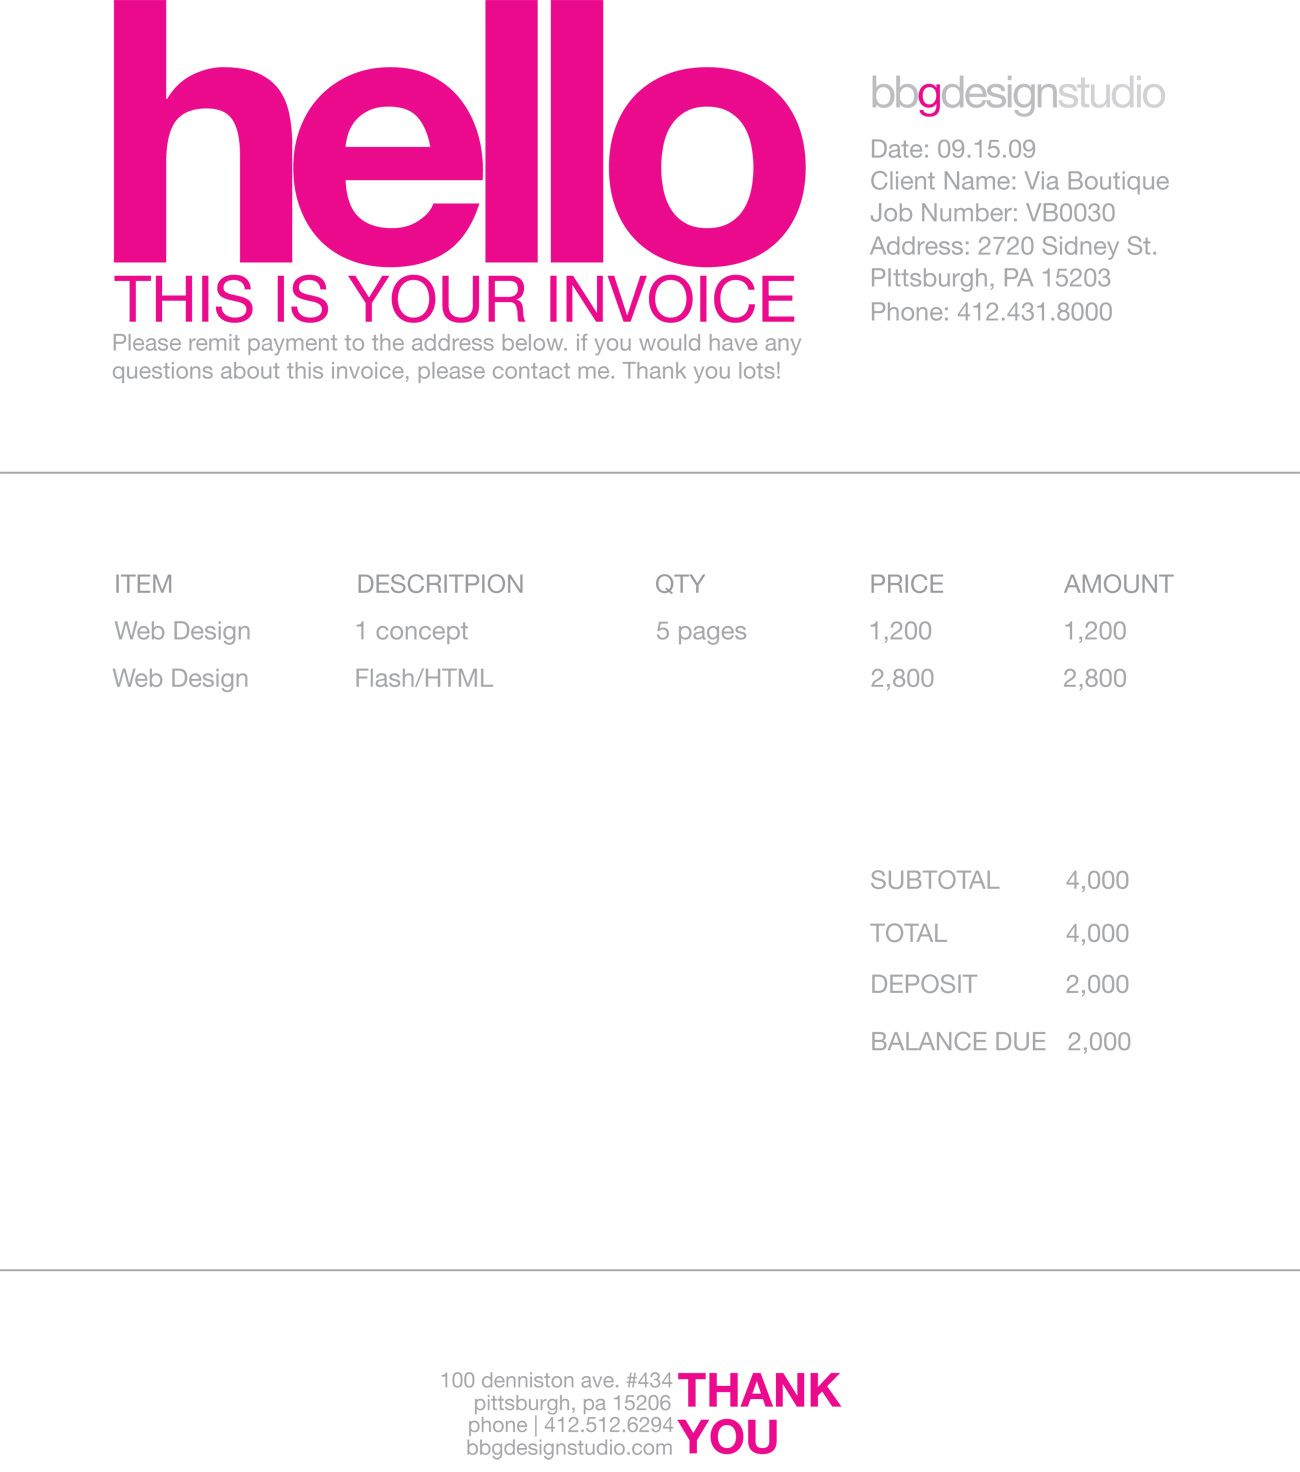 Reliefworkersus  Pleasing  Images About Invoice Design On Pinterest With Goodlooking Invoice Journal Entry Besides Pdf Invoices Furthermore Catering Invoices With Beauteous Free Construction Invoice Template Also Honda Accord  Invoice Price In Addition Free Printable Business Invoices And Example Of Invoices As Well As What Is A Purchase Invoice Additionally How Do I Find Invoice Price On A New Car From Pinterestcom With Reliefworkersus  Goodlooking  Images About Invoice Design On Pinterest With Beauteous Invoice Journal Entry Besides Pdf Invoices Furthermore Catering Invoices And Pleasing Free Construction Invoice Template Also Honda Accord  Invoice Price In Addition Free Printable Business Invoices From Pinterestcom